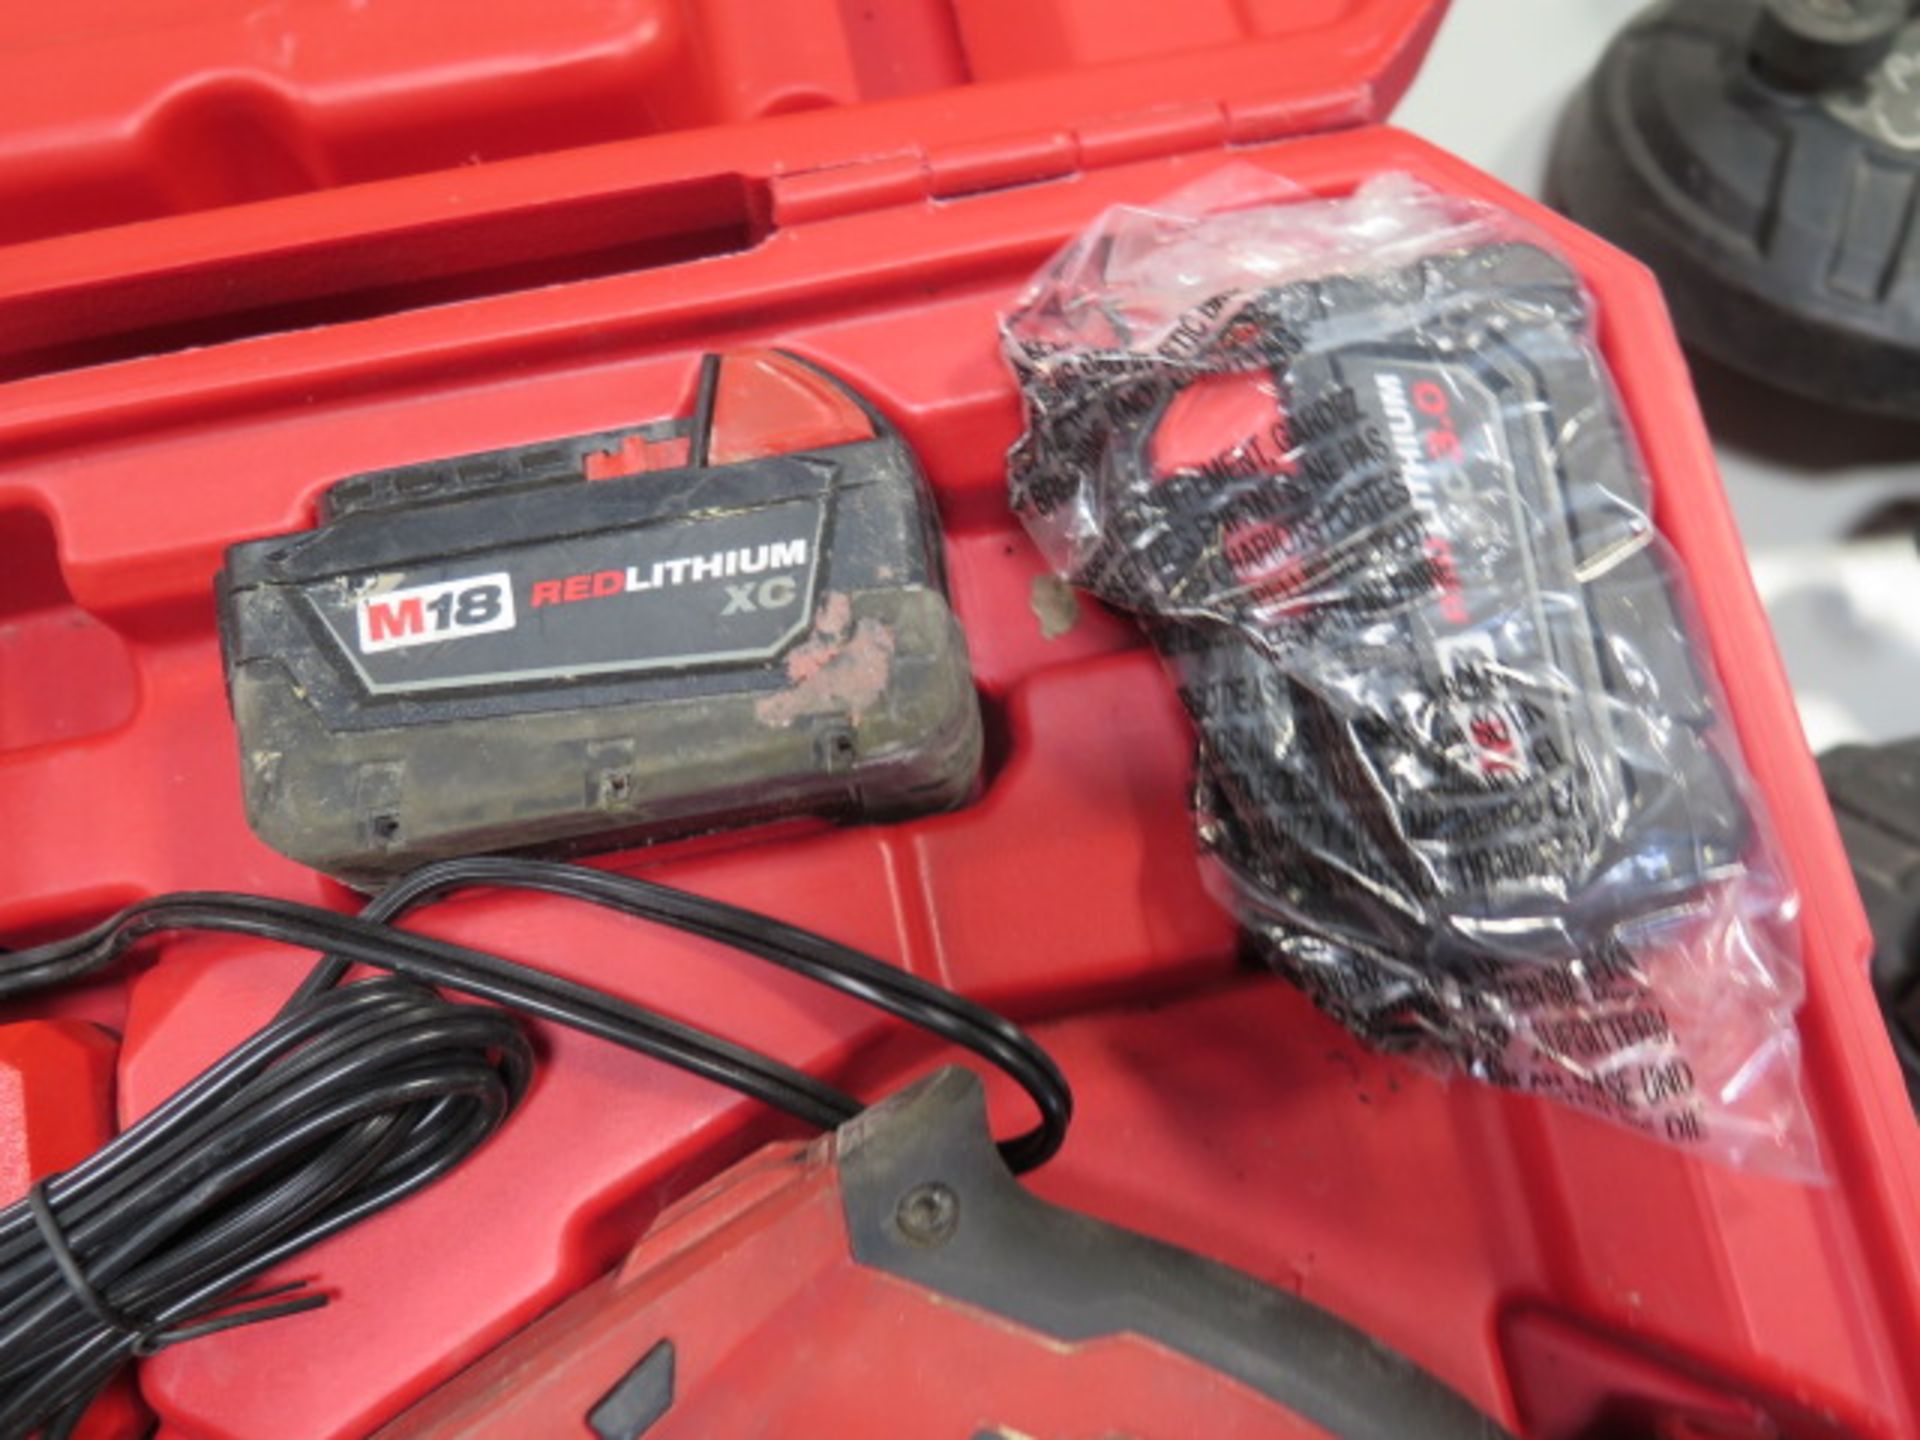 Milwaukee 18 Volt Compact Portable Band Saw Sets (2) (SOLD AS-IS - NO WARRANTY) - Image 5 of 10